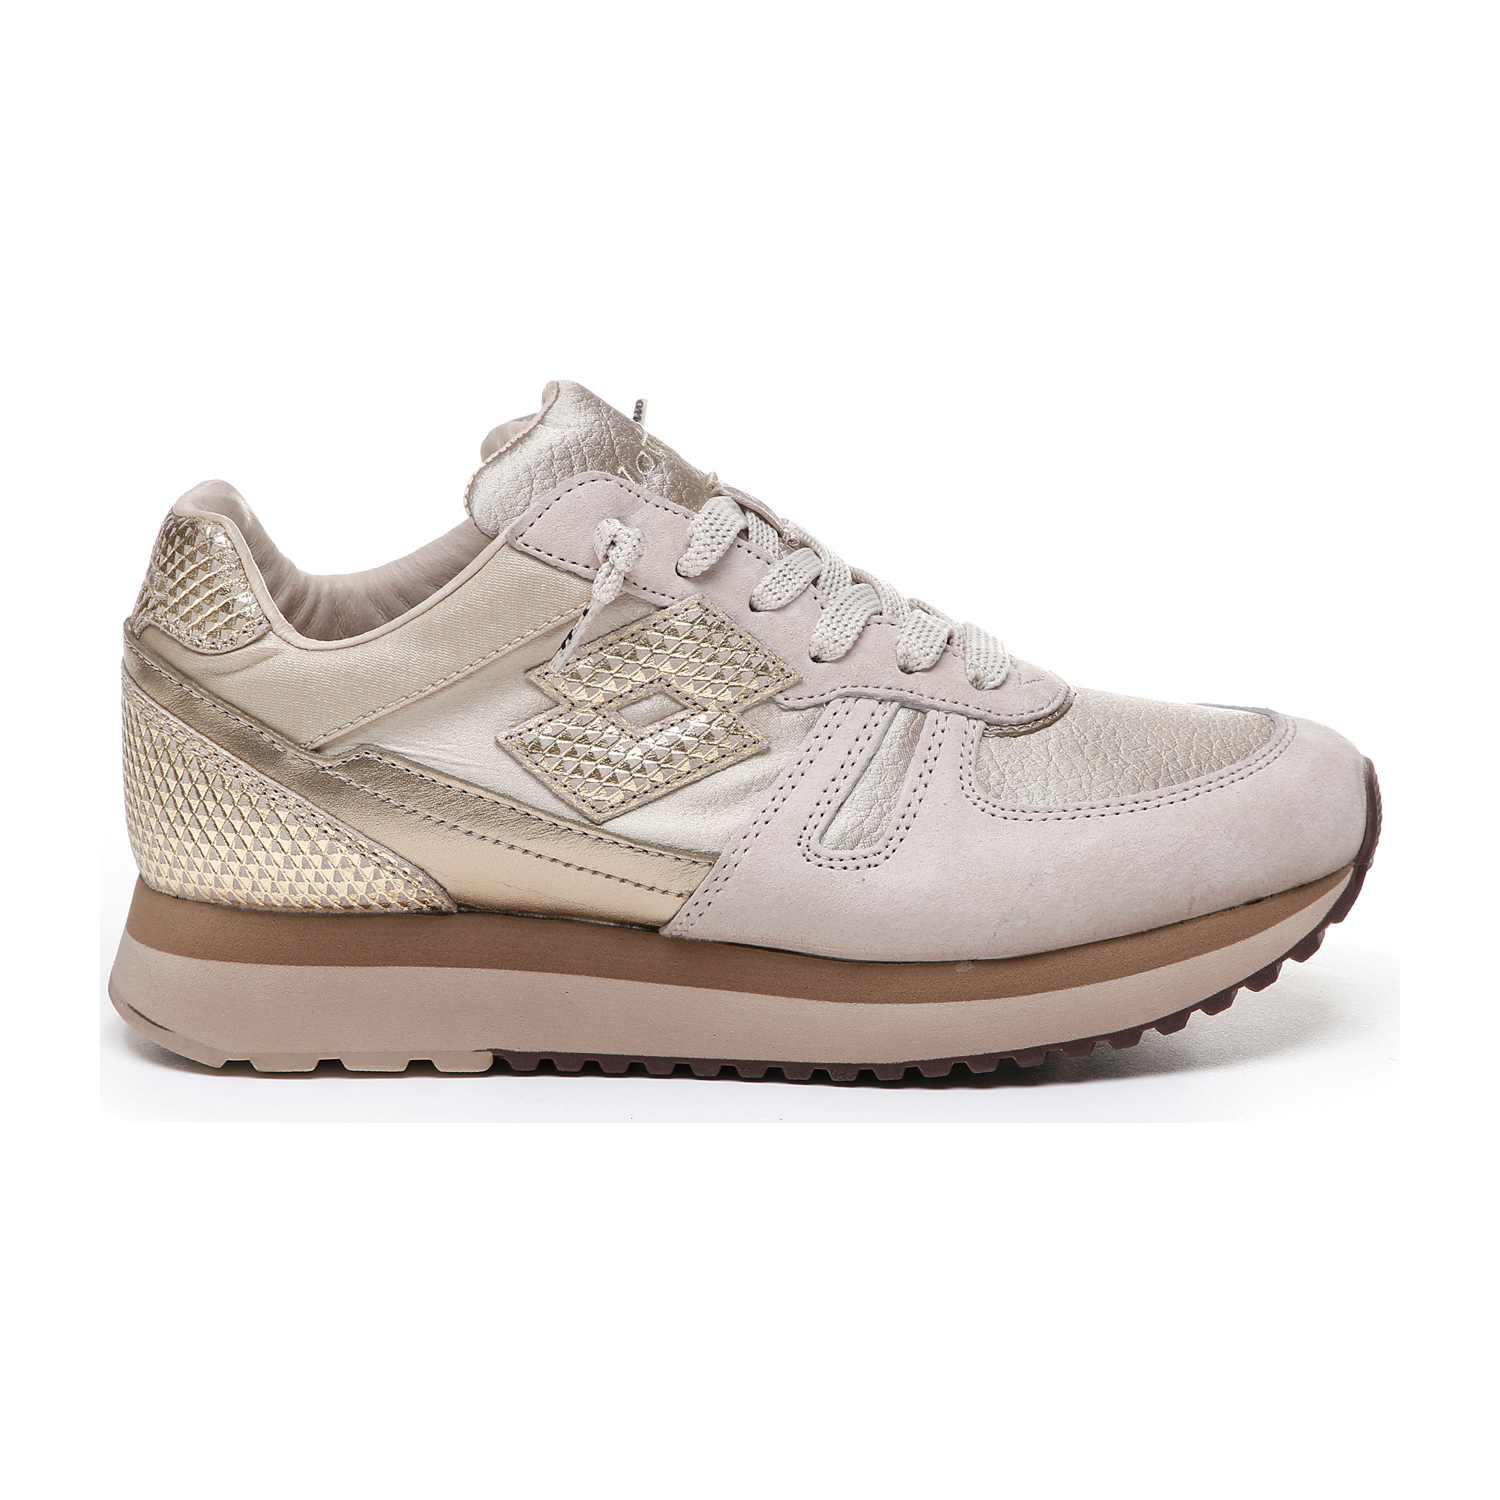 Footwear Italia Accessories Clothing Sport Lotto For And Bqw87fnz